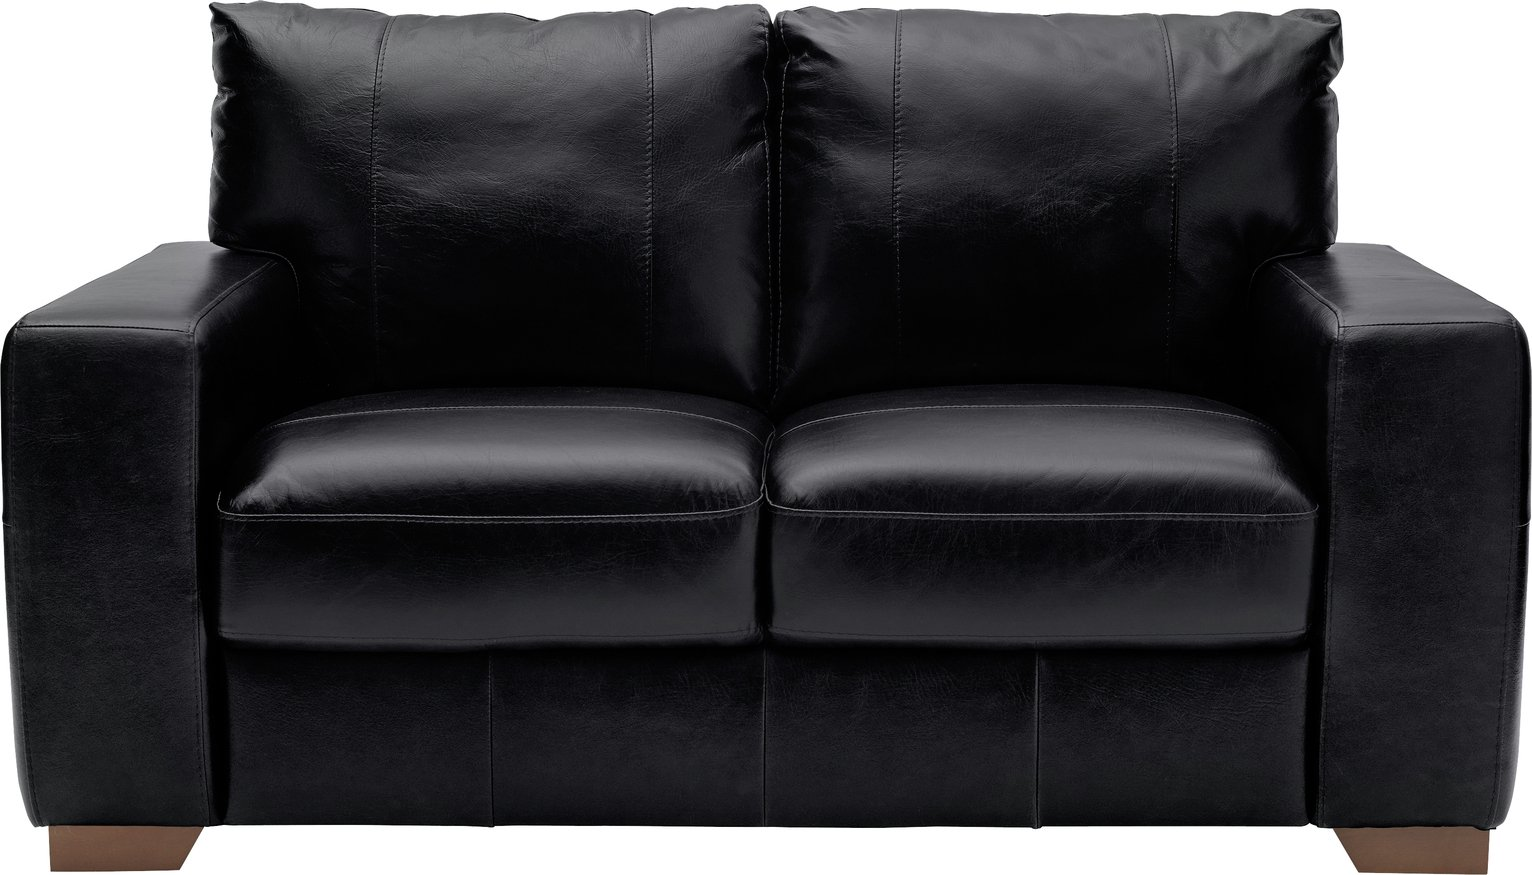 Argos Home Eton 2 Seater Leather Sofa - Black